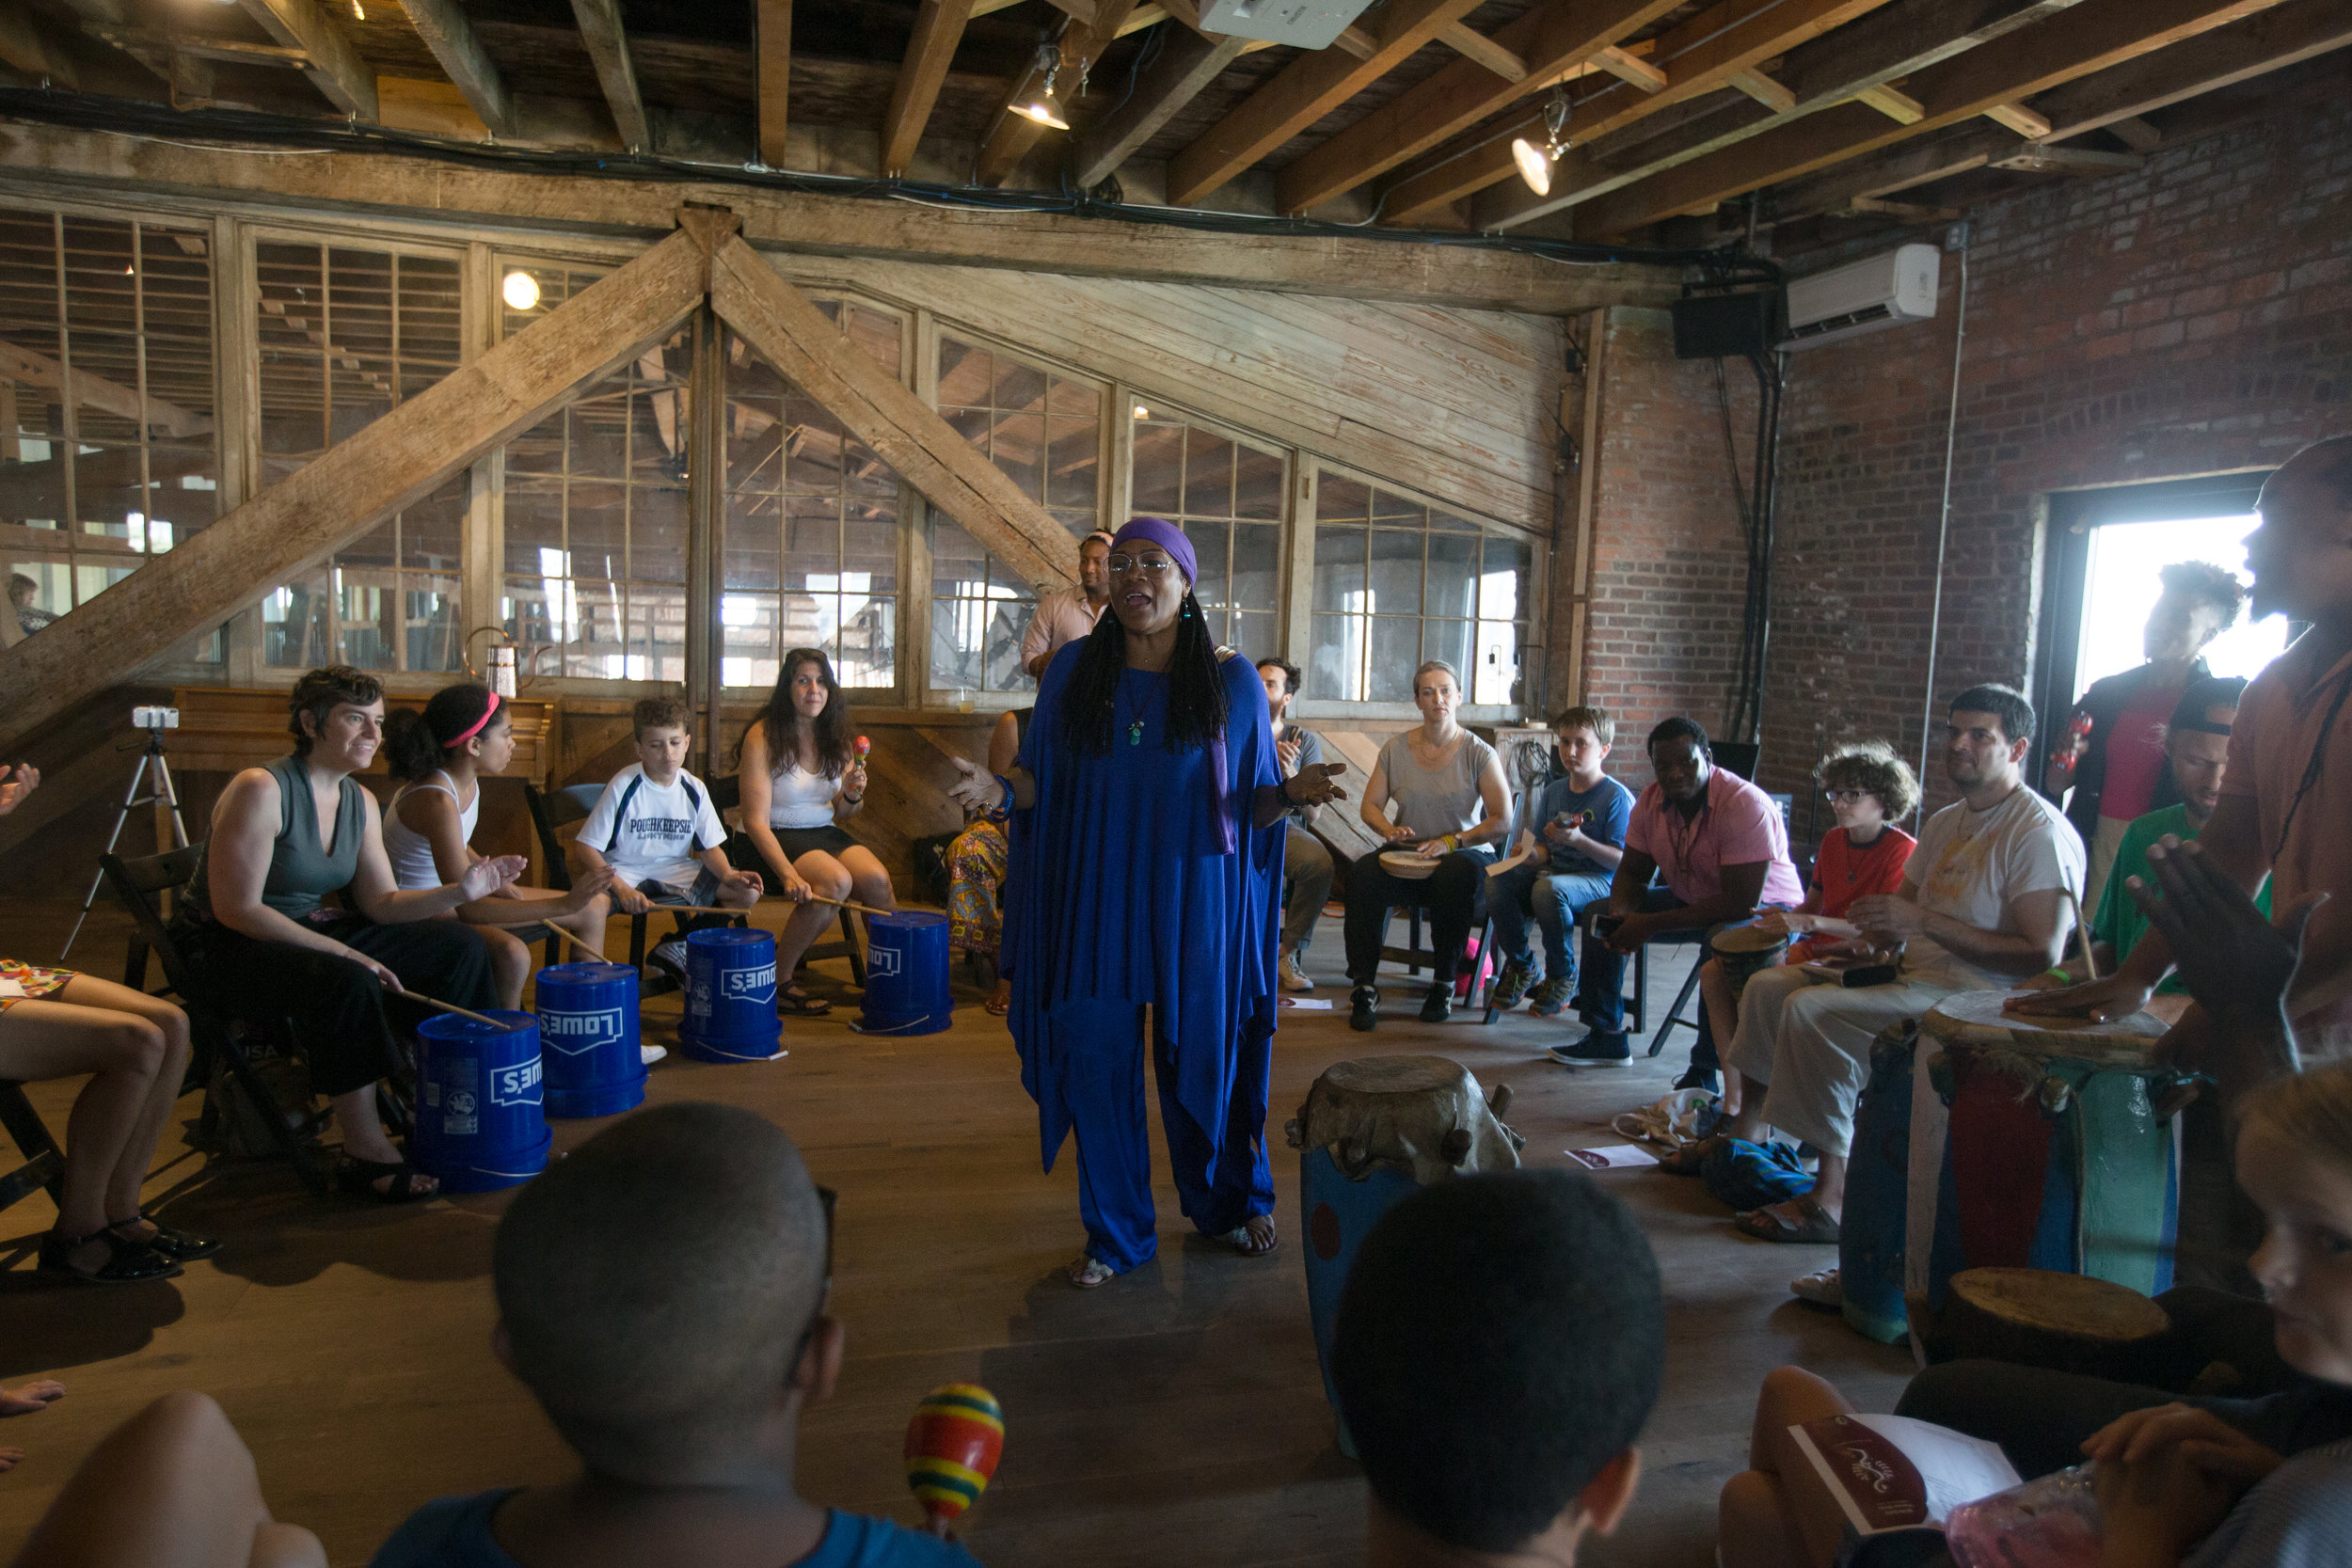 Manze of Boukman Eksperyans leading a song and  percussion, and  workshop  illuminating Haitian Roots culture for participants at Pioneer Works artist space in Red Hook Brooklyn.